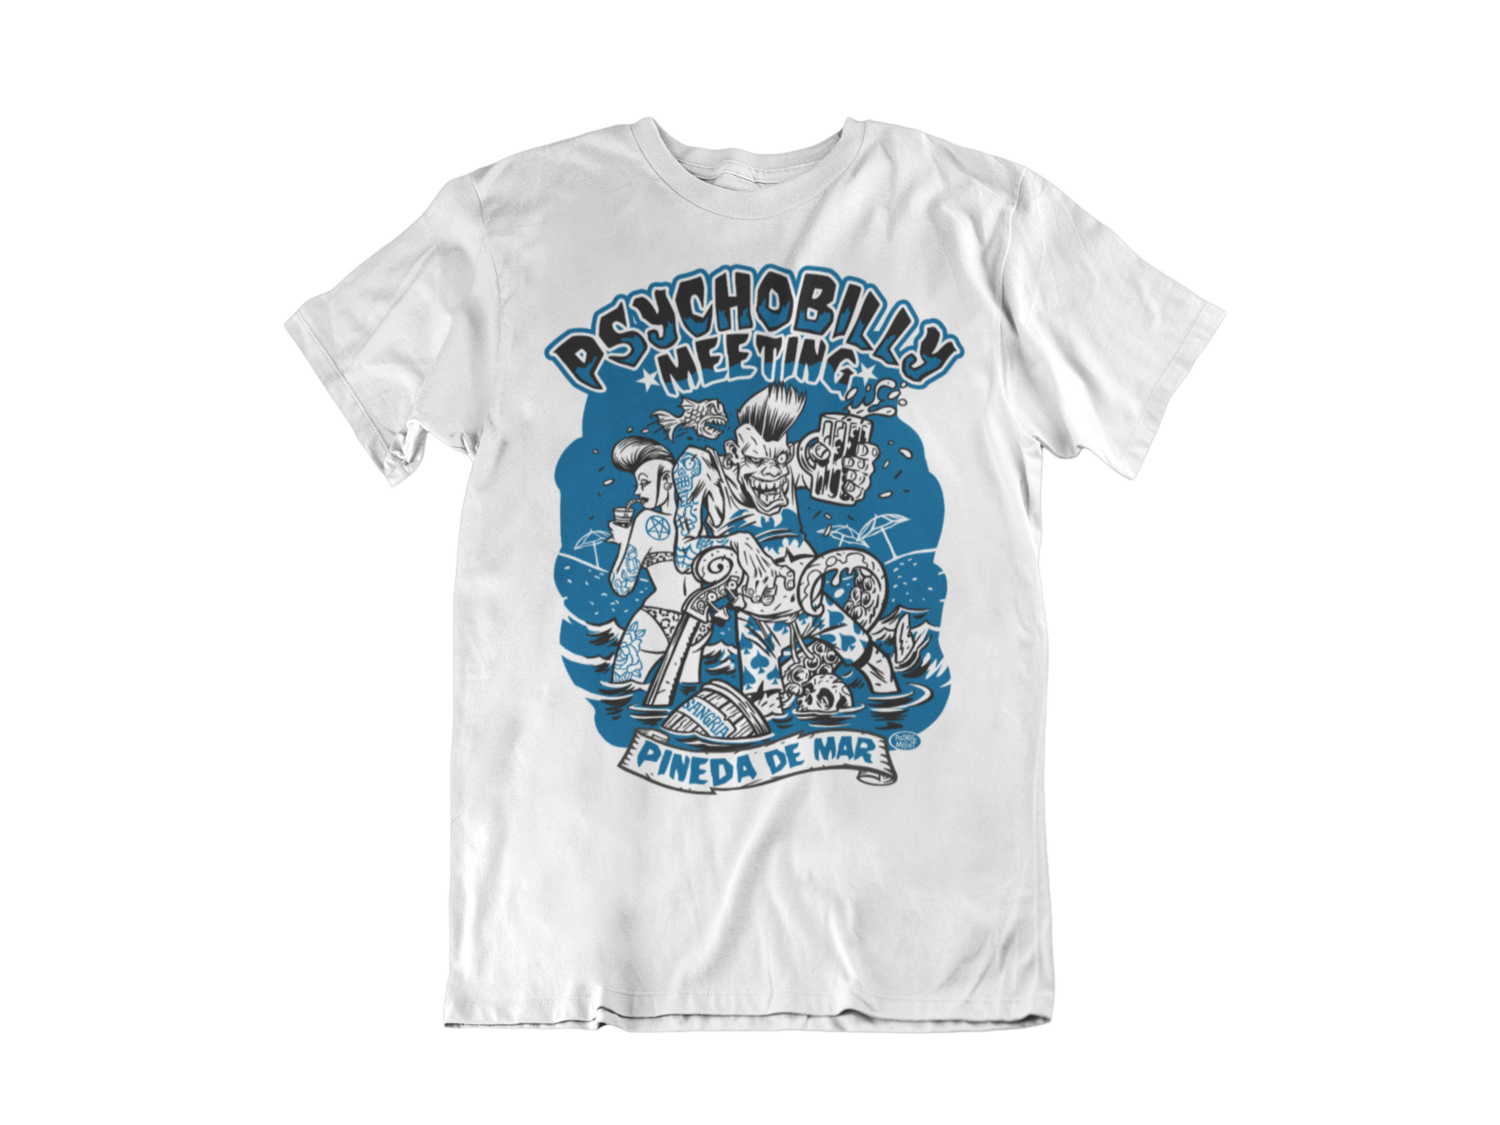 PSYCHOBILLY MEETING 2019 T-SHIRT MAN BY PASKAL